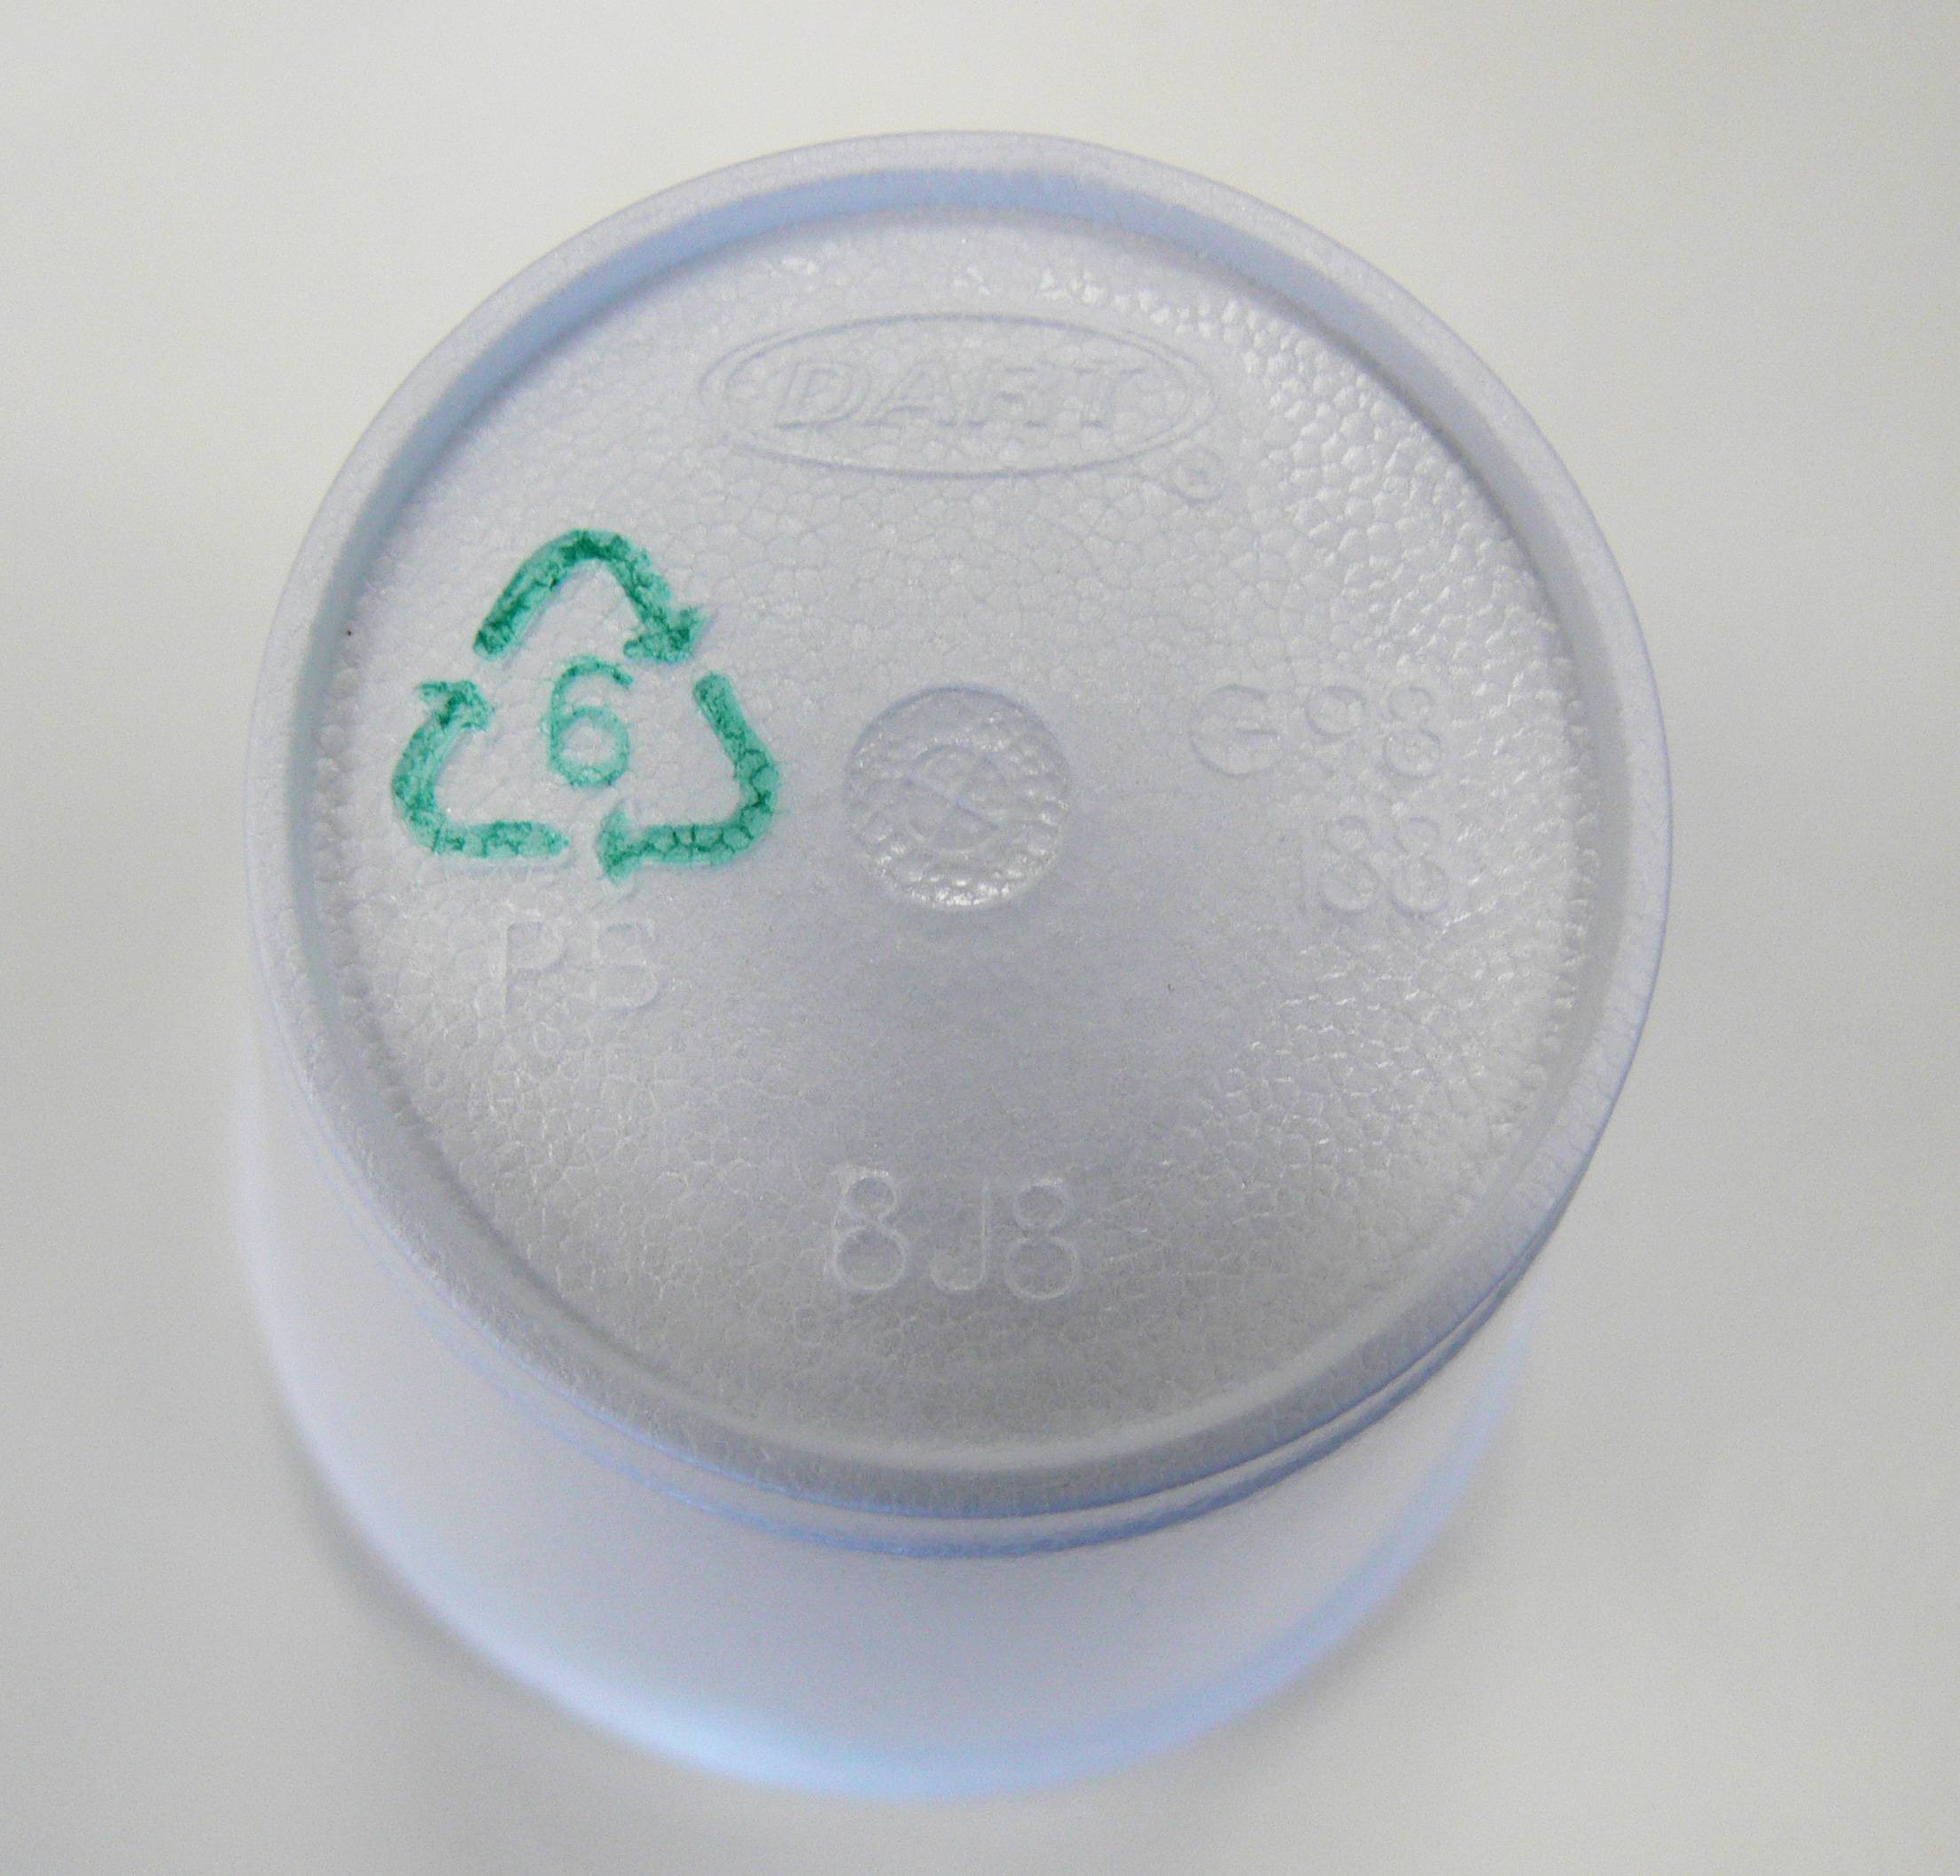 plastic container with recycle symbol triangle of arrows with number 6 inside triangle